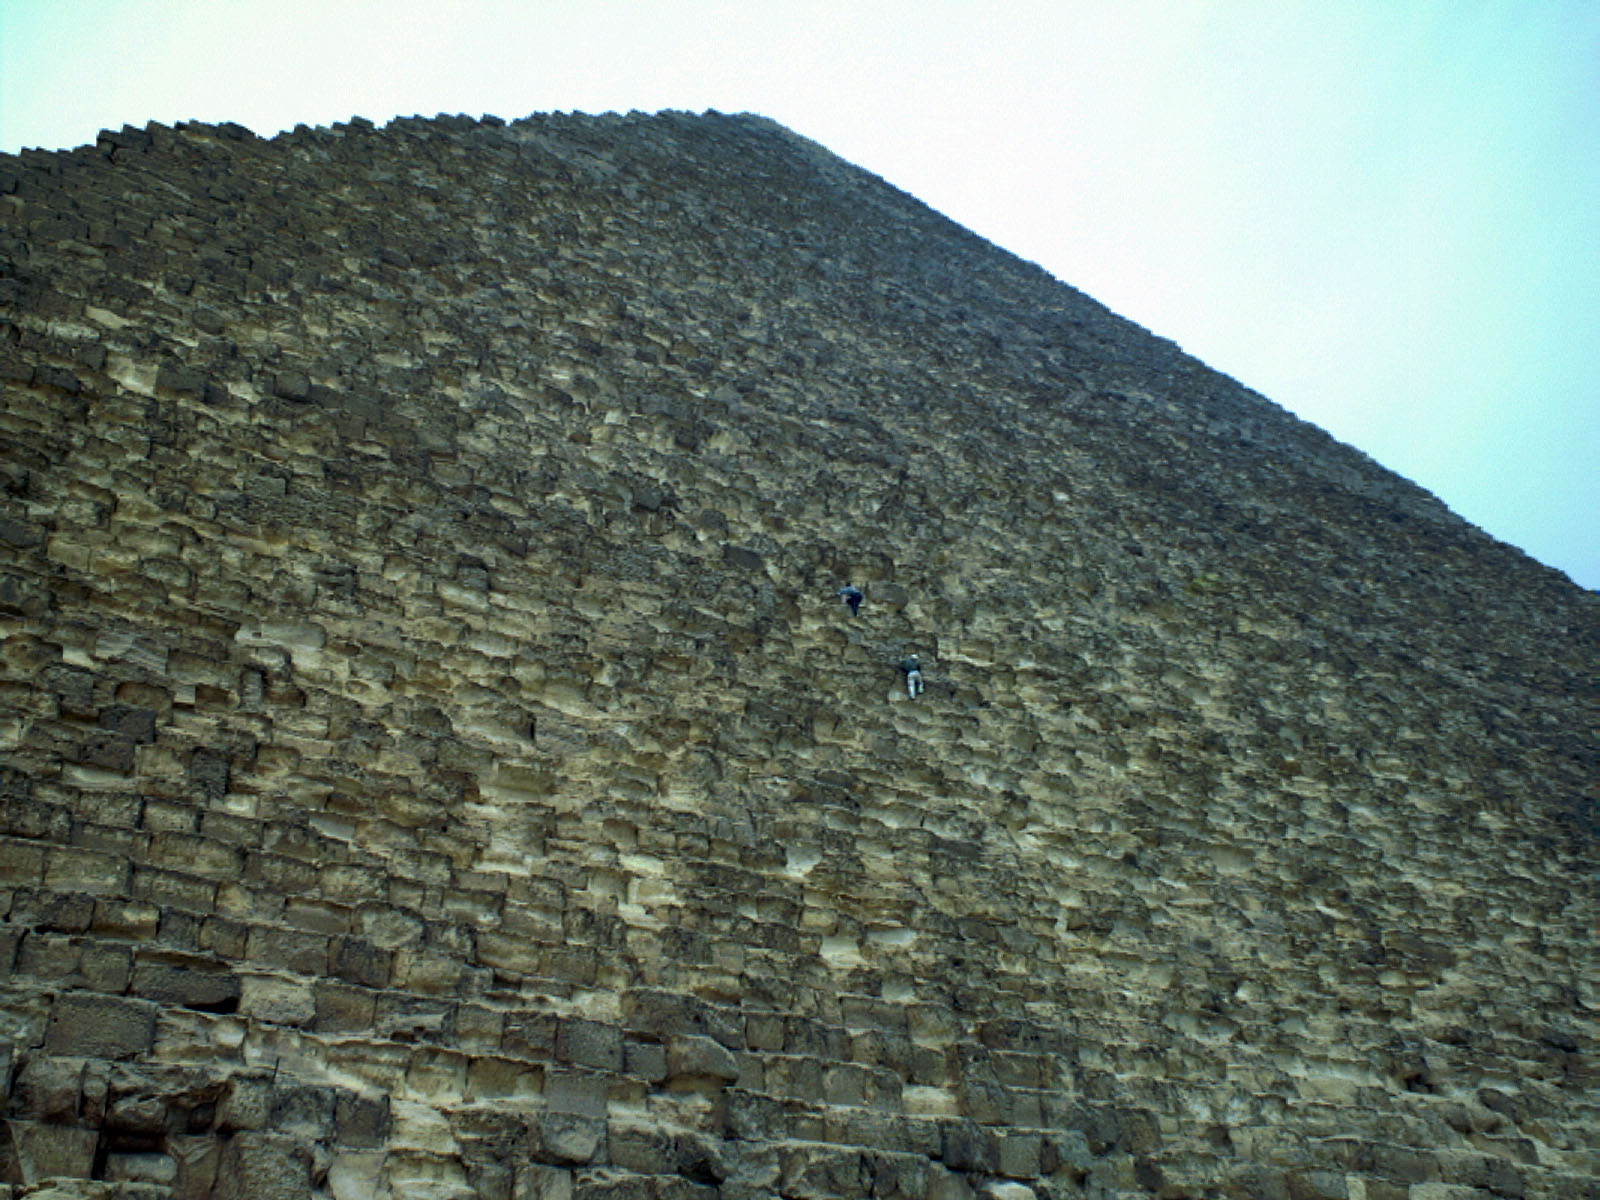 People & places: Site: Giza; View: Khufu pyramid